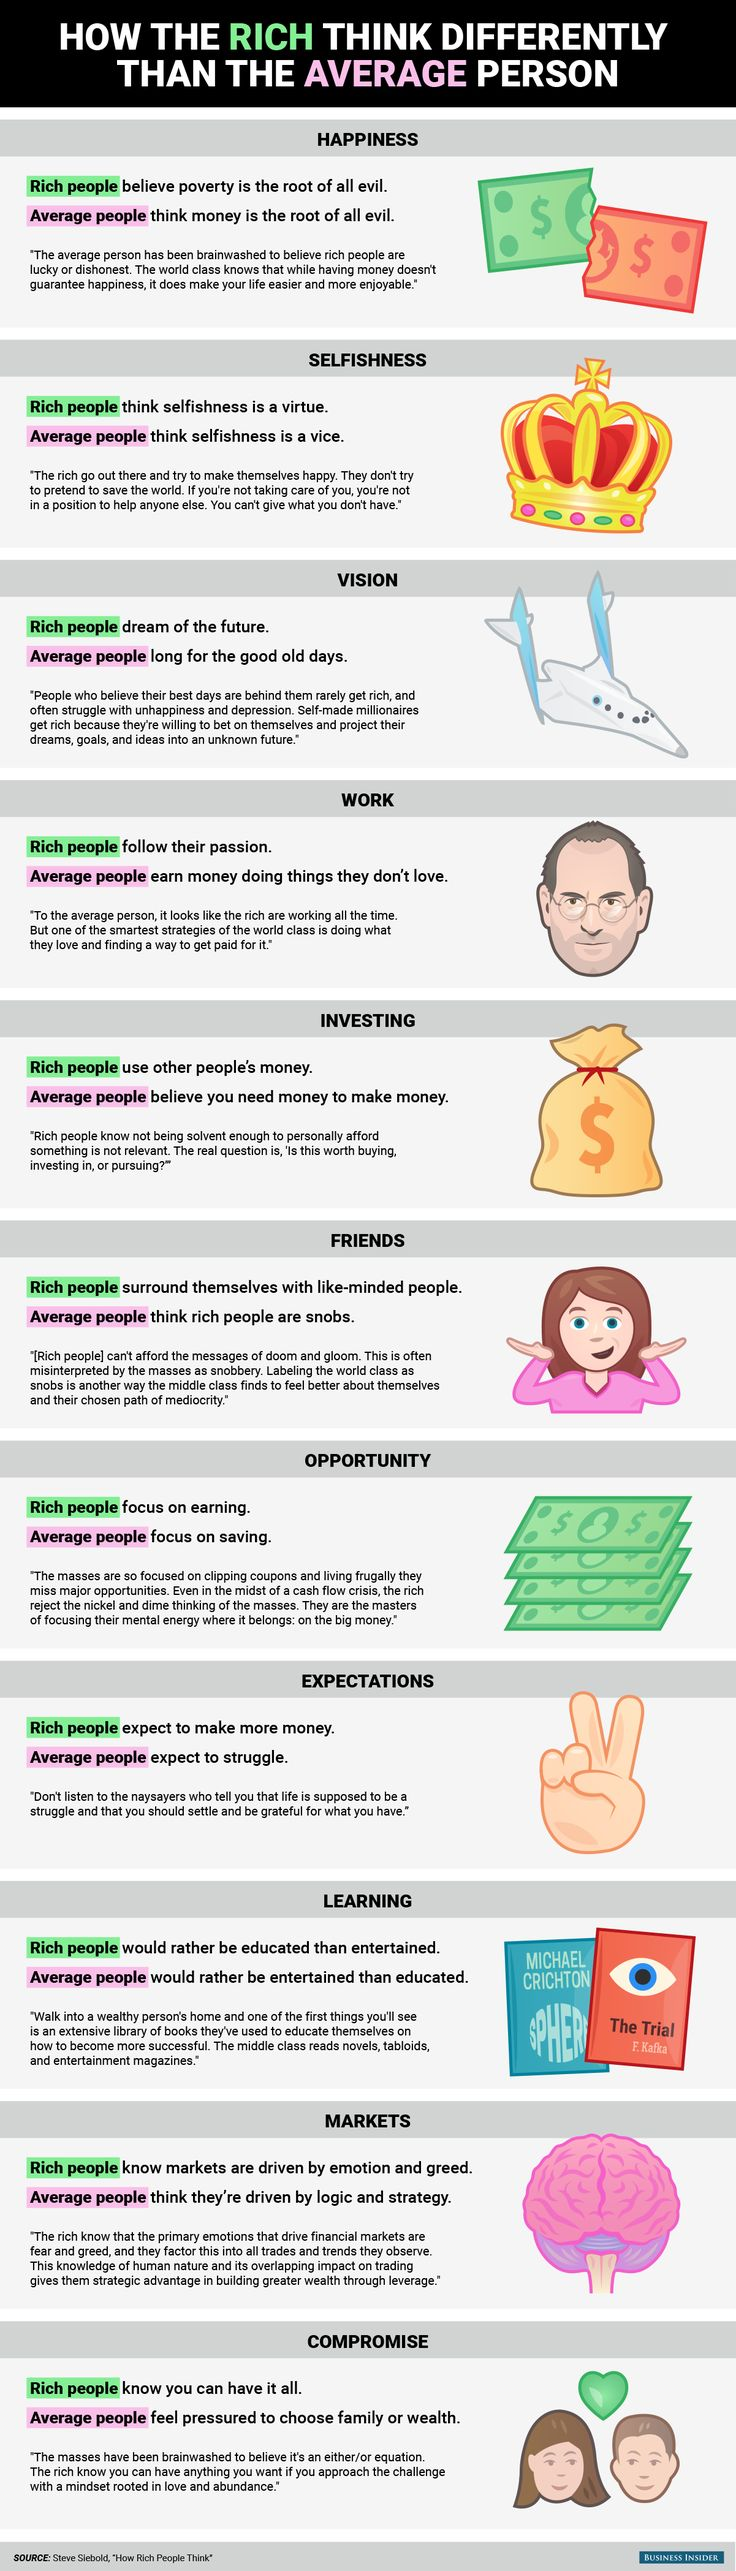 11 ways rich people think differently than the average person.